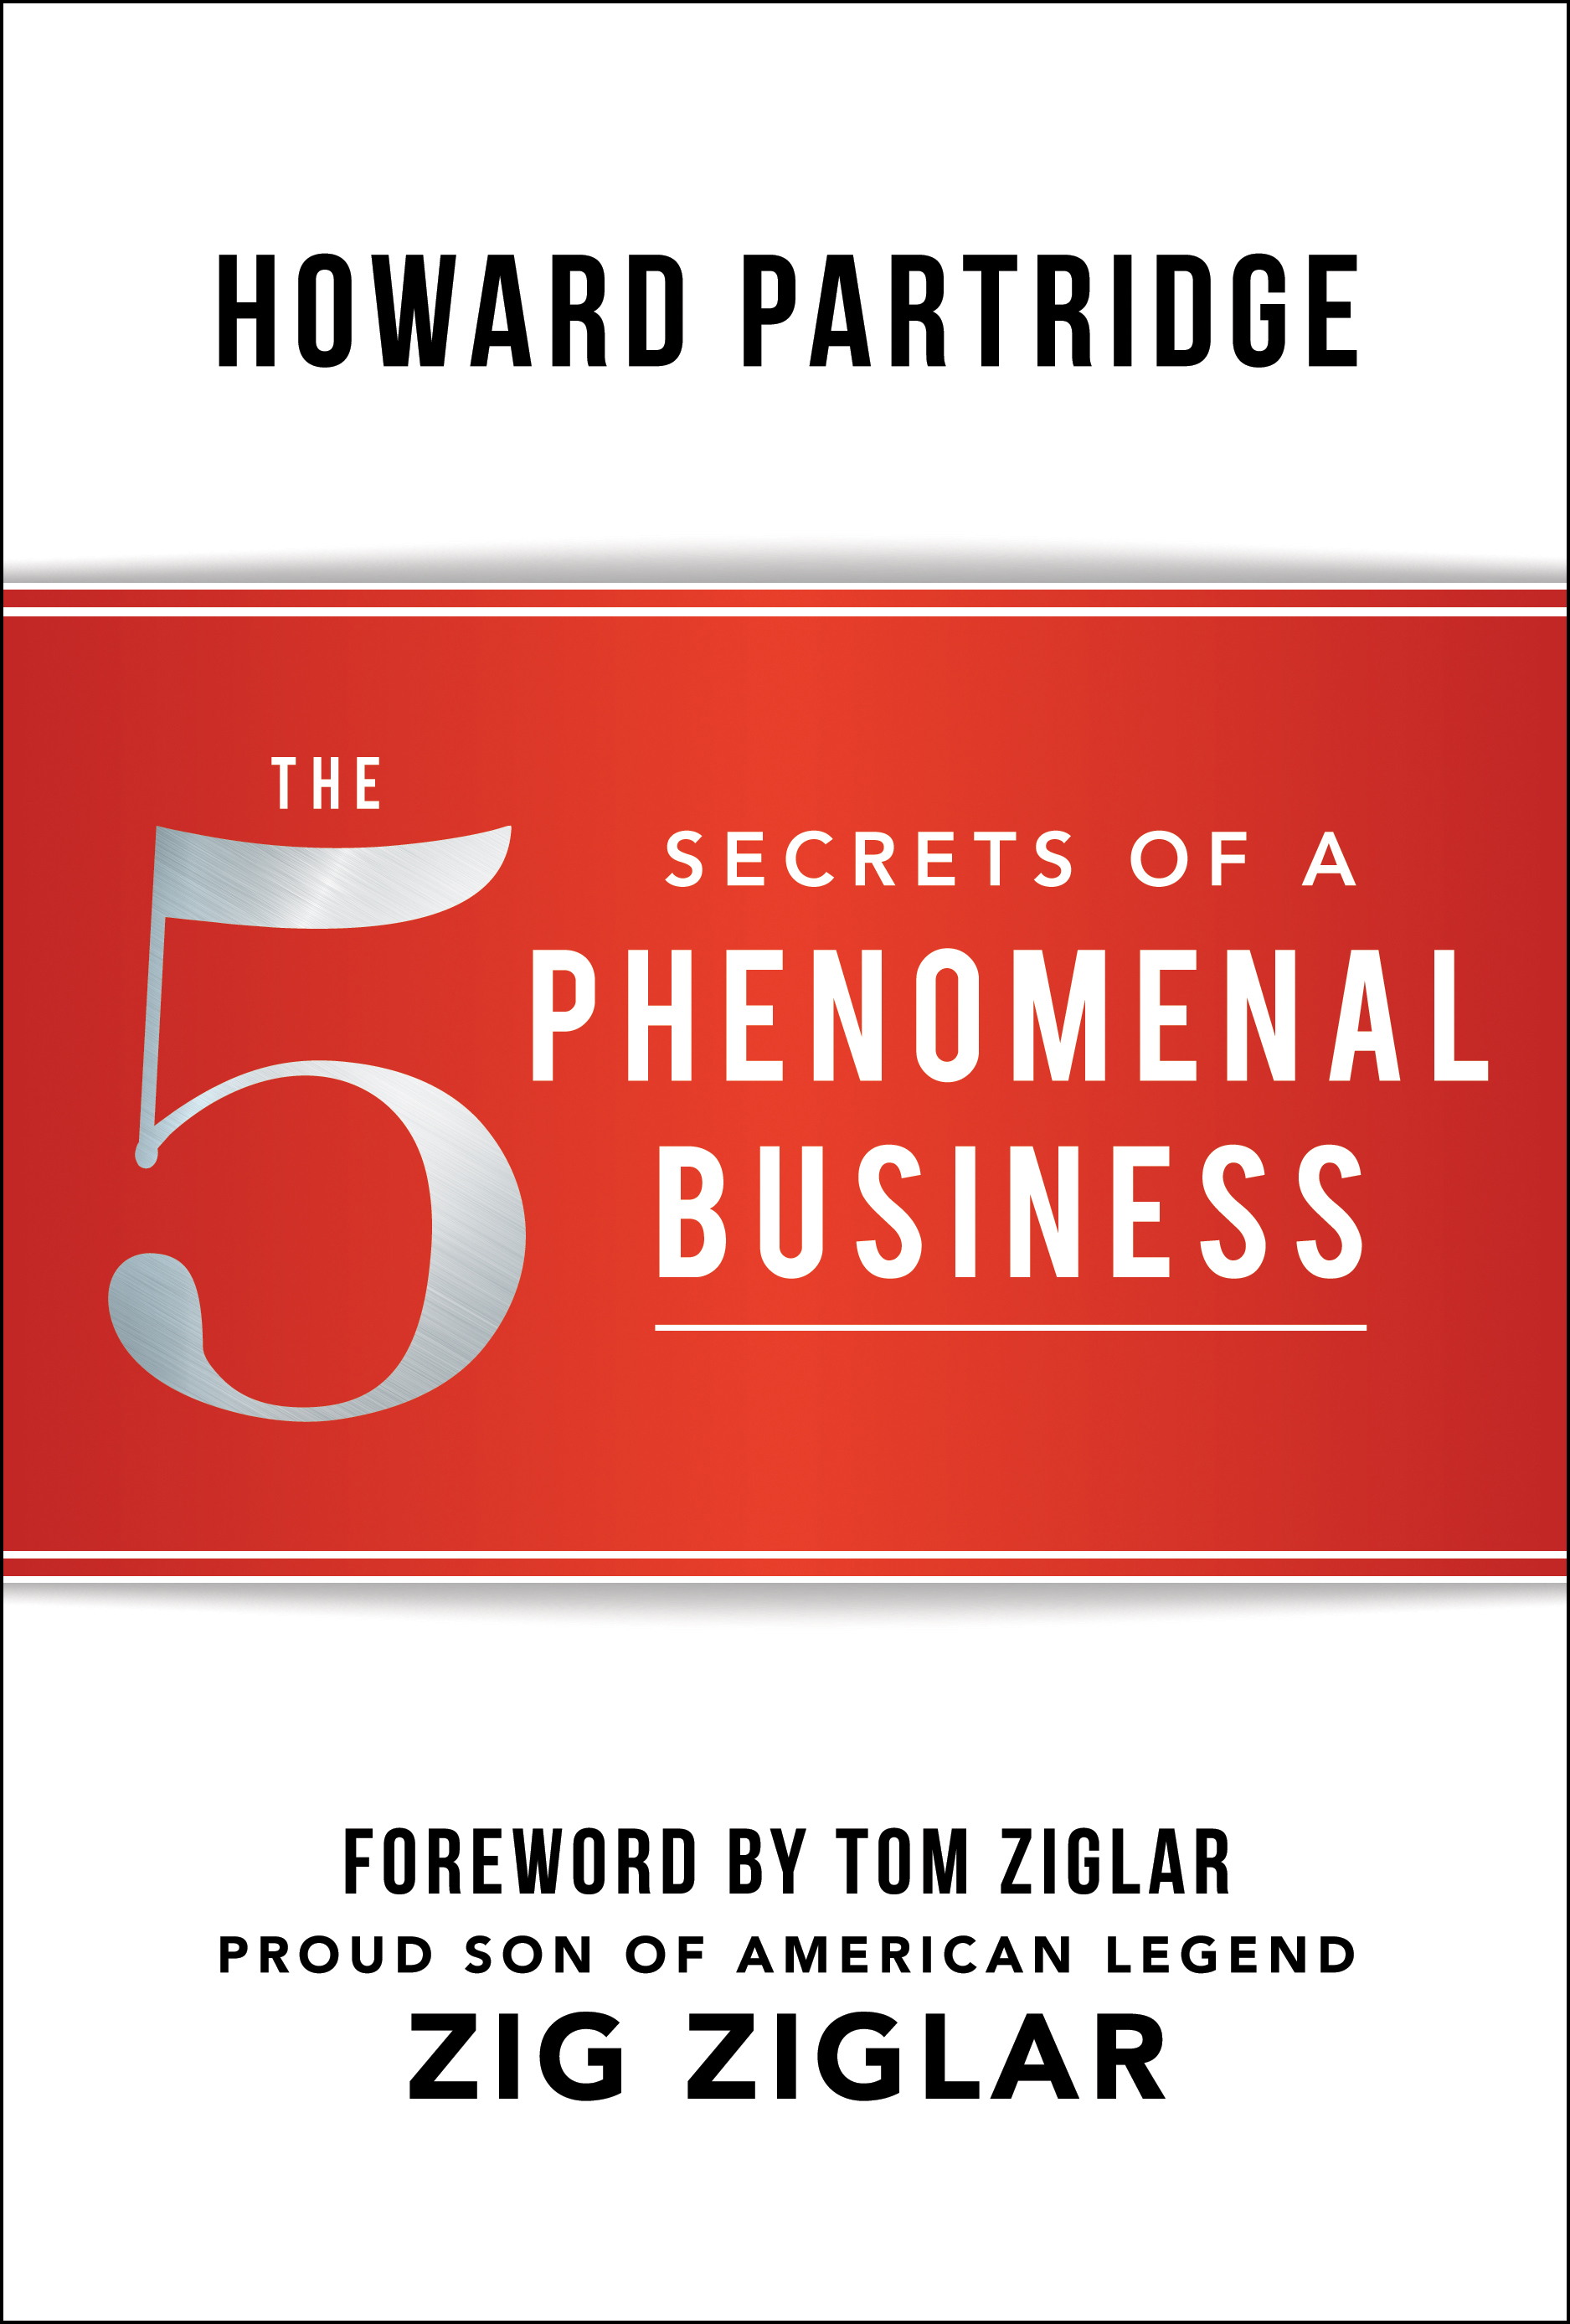 The 5 Secrets of a Phenomenal Business - By howard partridge